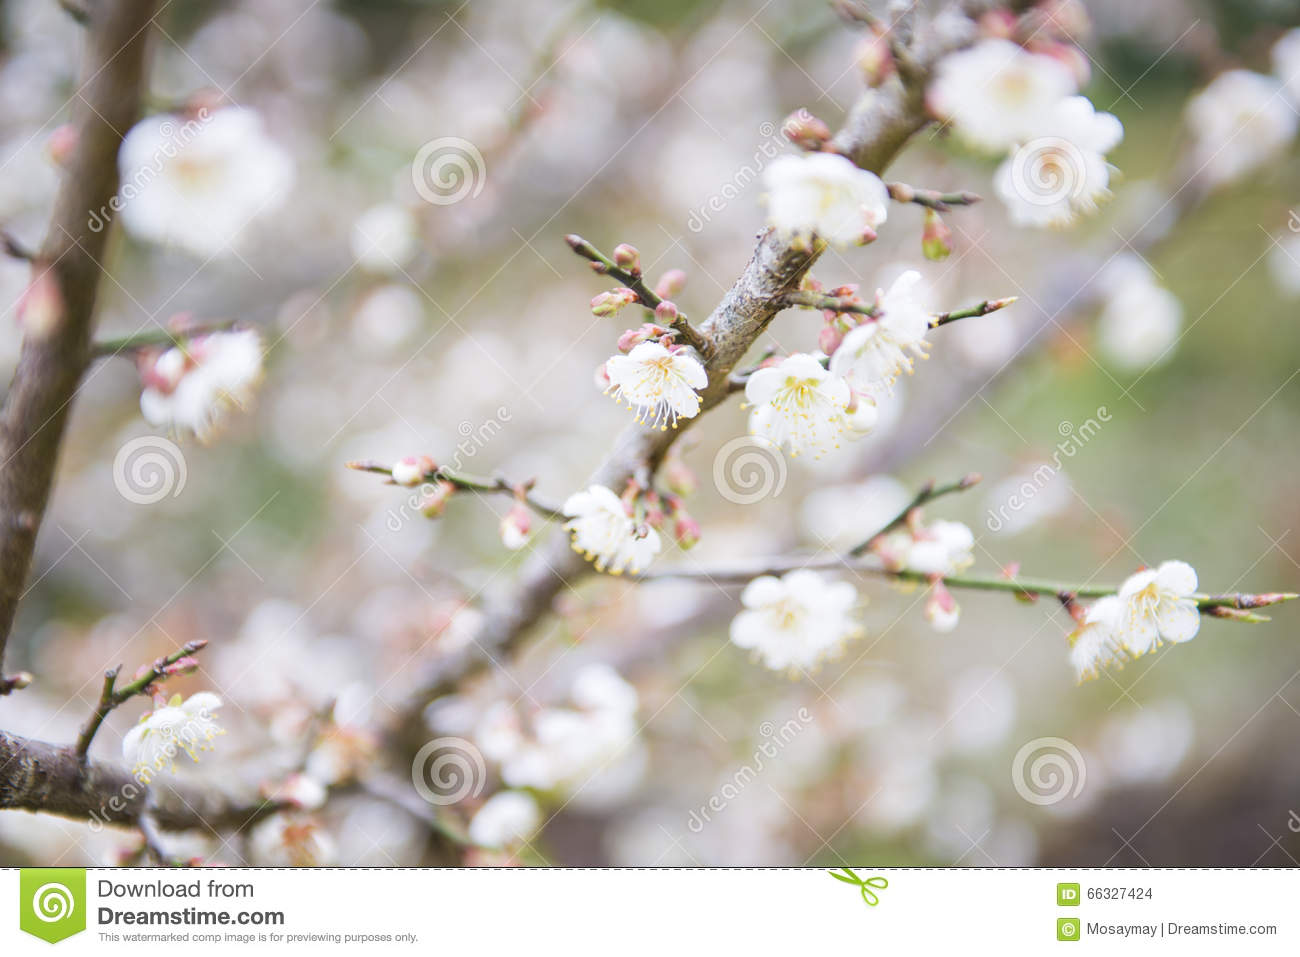 Blooming White Plum Blossom On A Branch Stock Photo Image Of